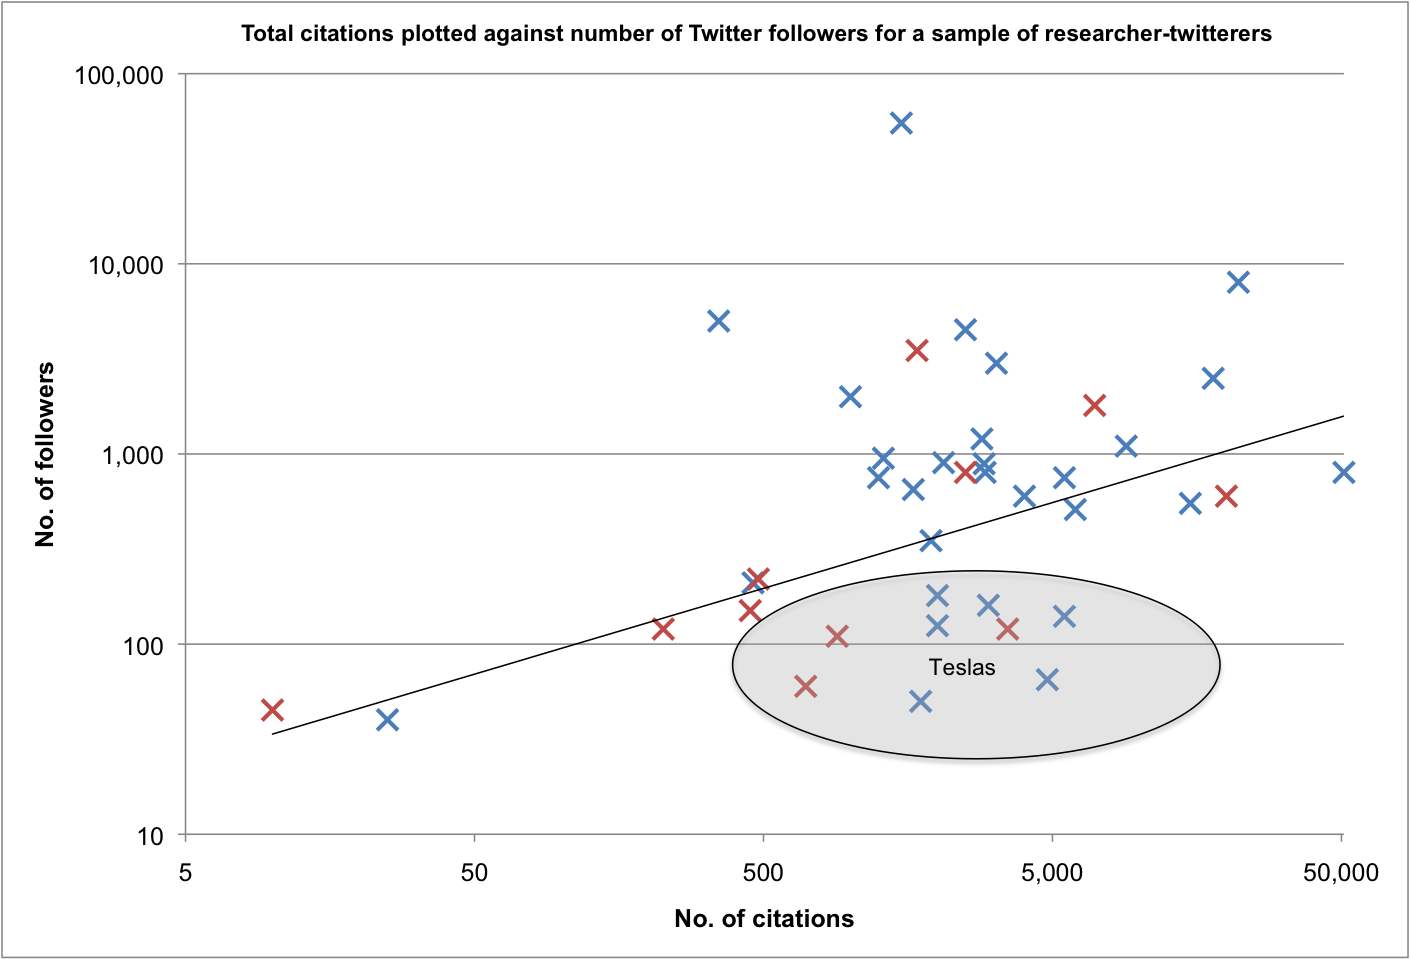 Figure 1: Twitter followers versus number of scientific citations for a sort-of-random sample of researcher tweeters